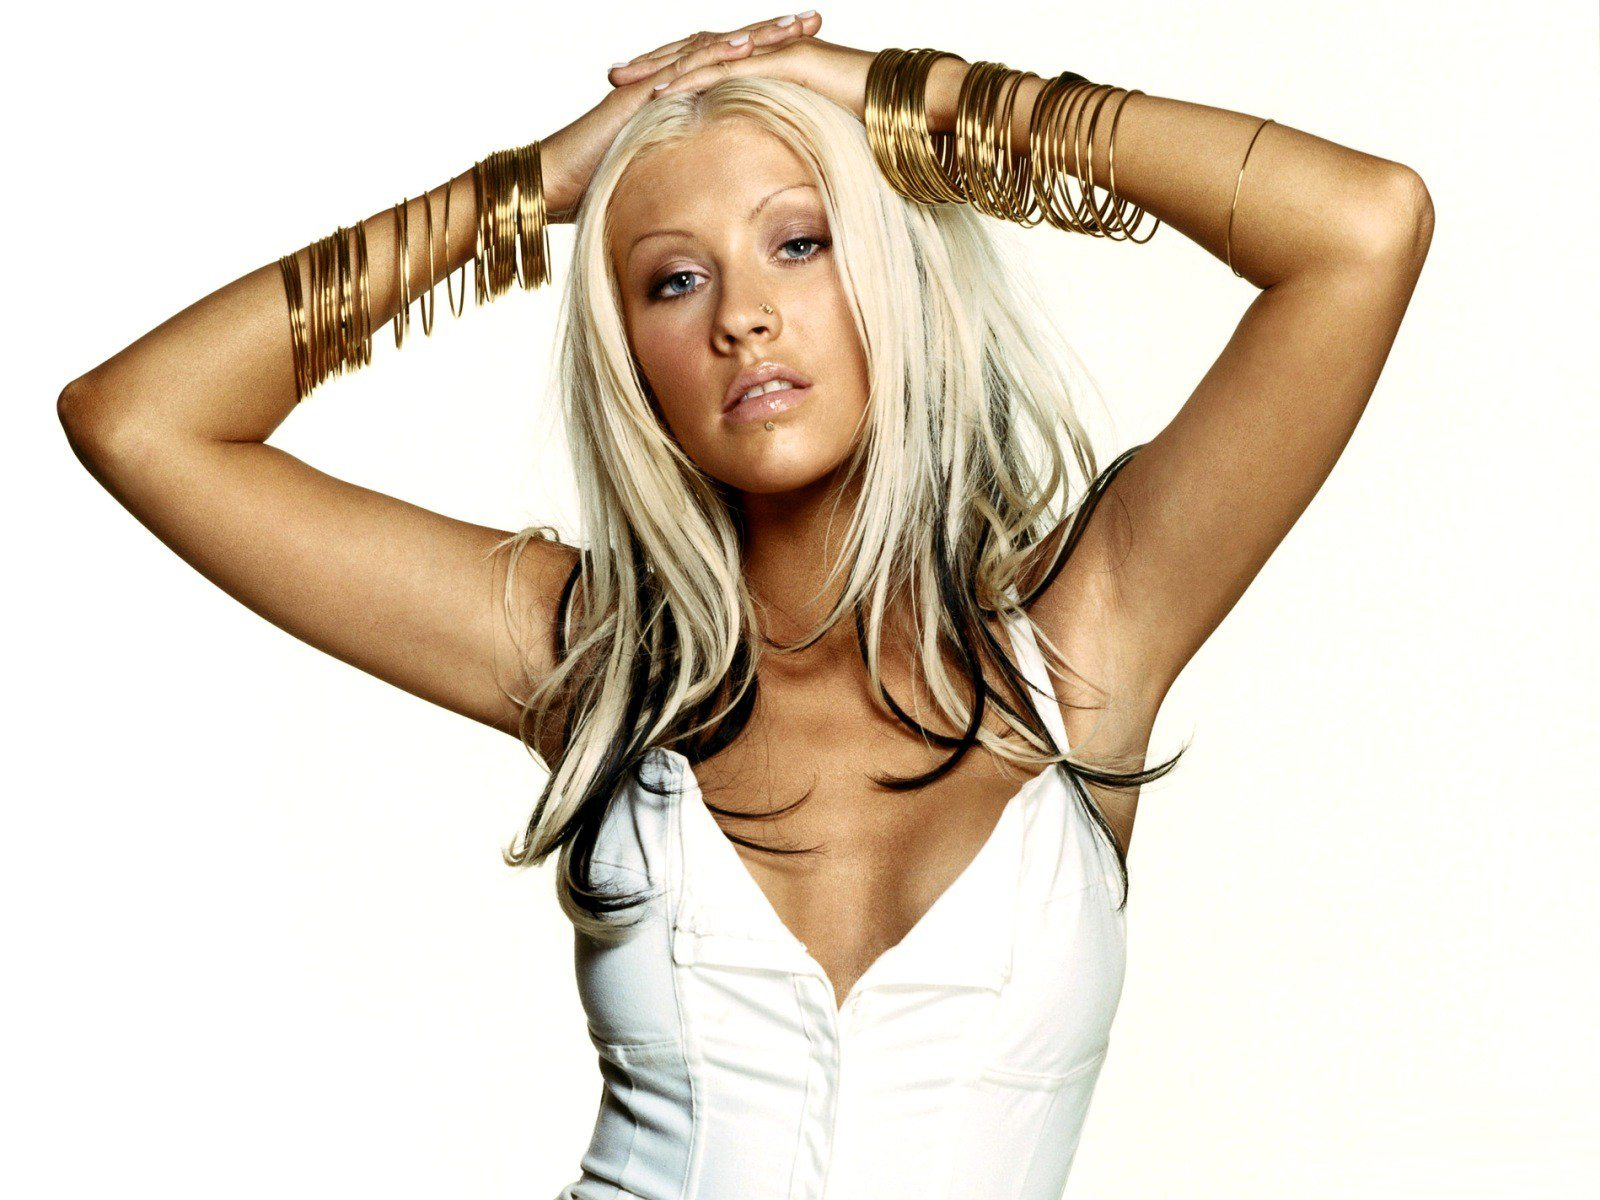 Christina Aguilera Ttwitter